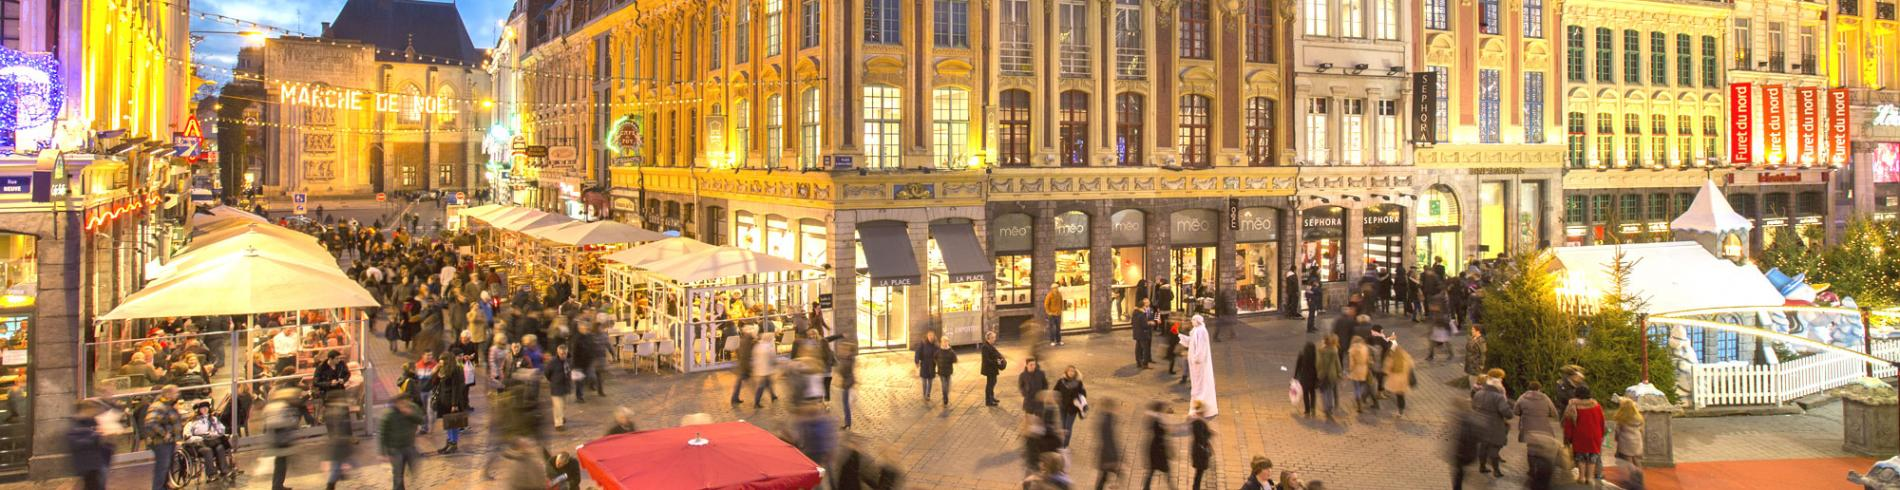 View of the Christmas market in Lille at night time